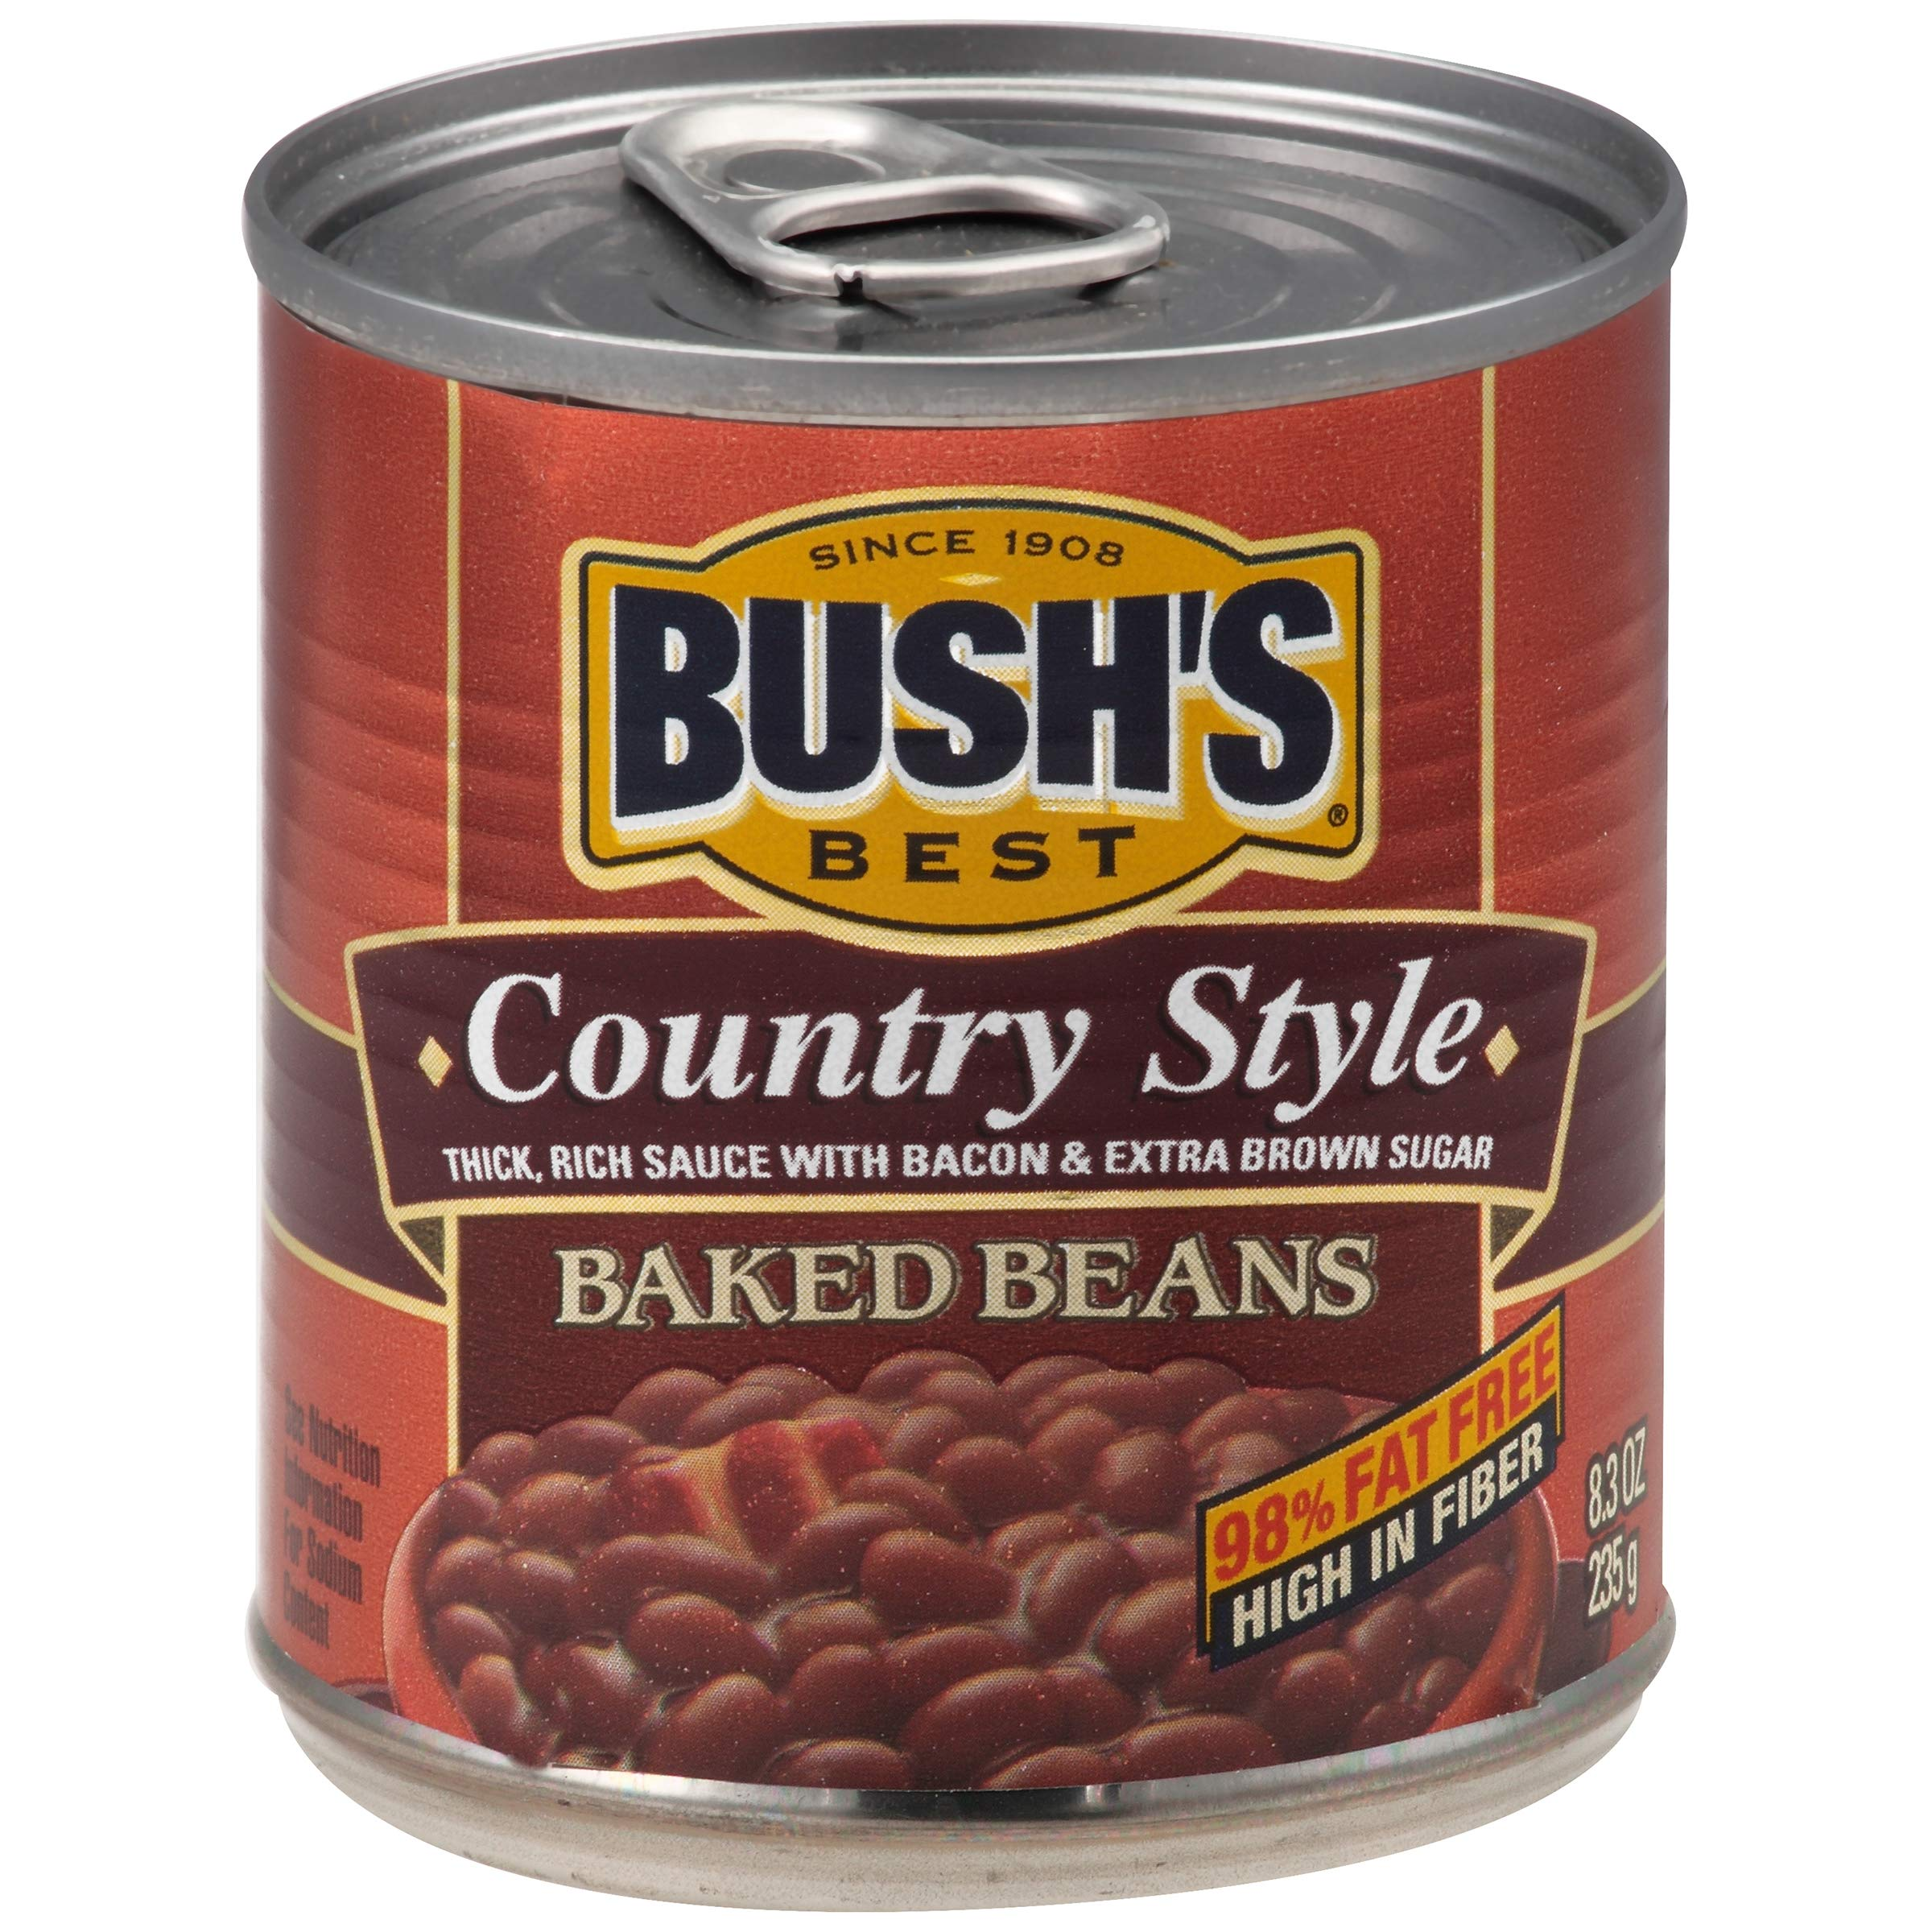 Bushs Best Country Style Baked Beans, 8.3 oz (12 cans)